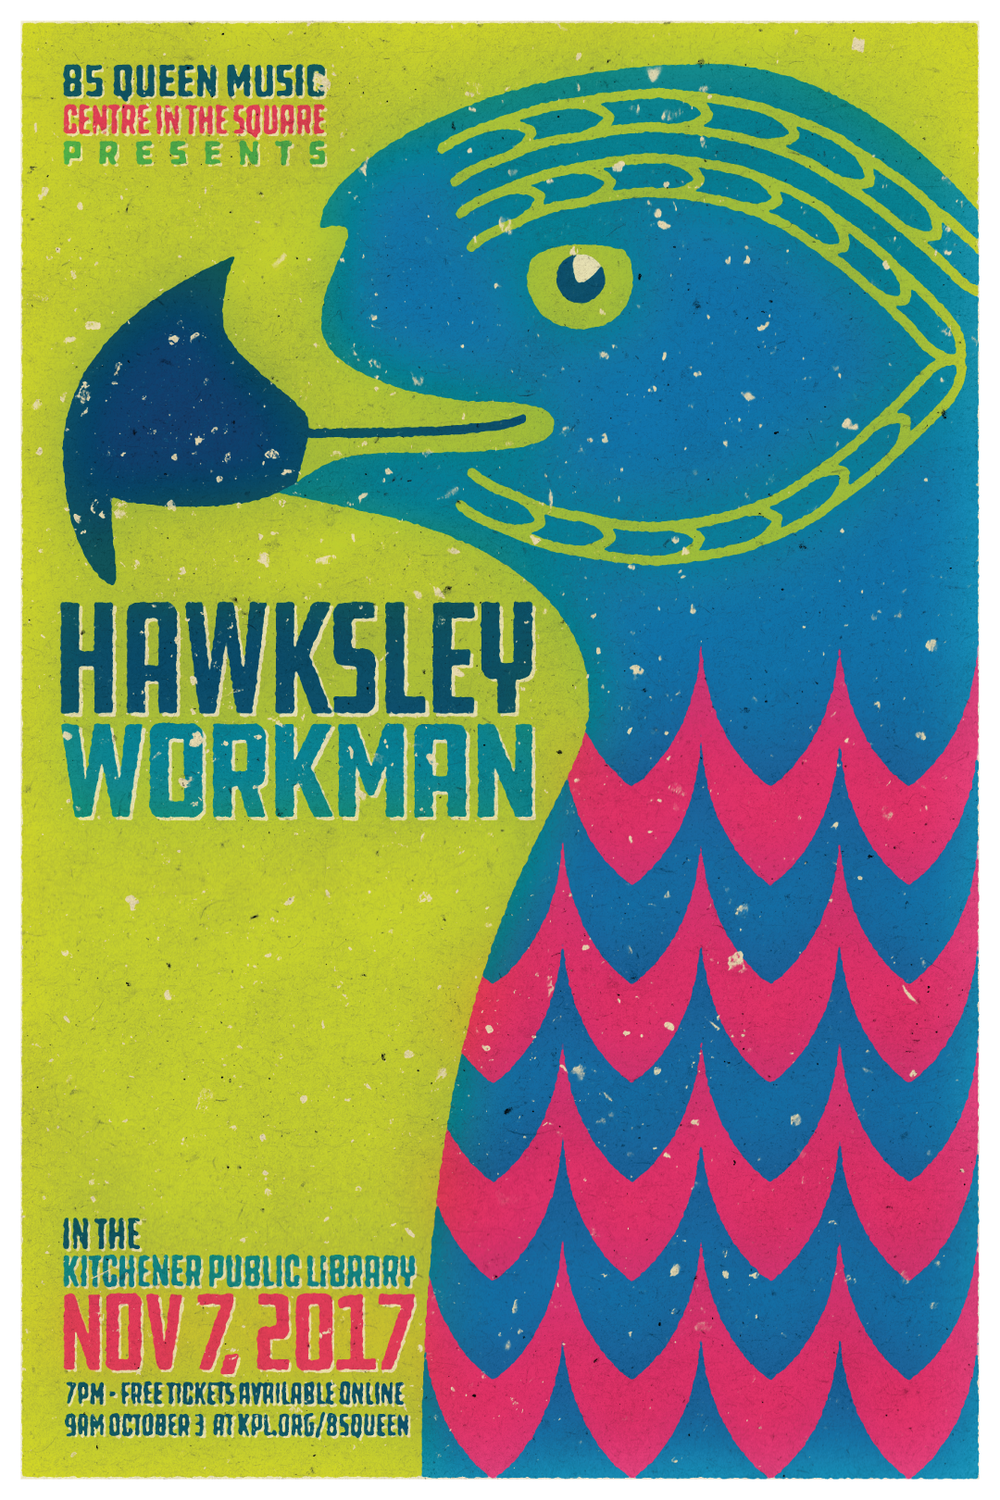 CITS-Hawksley-Workman---Sept-20-2017.png